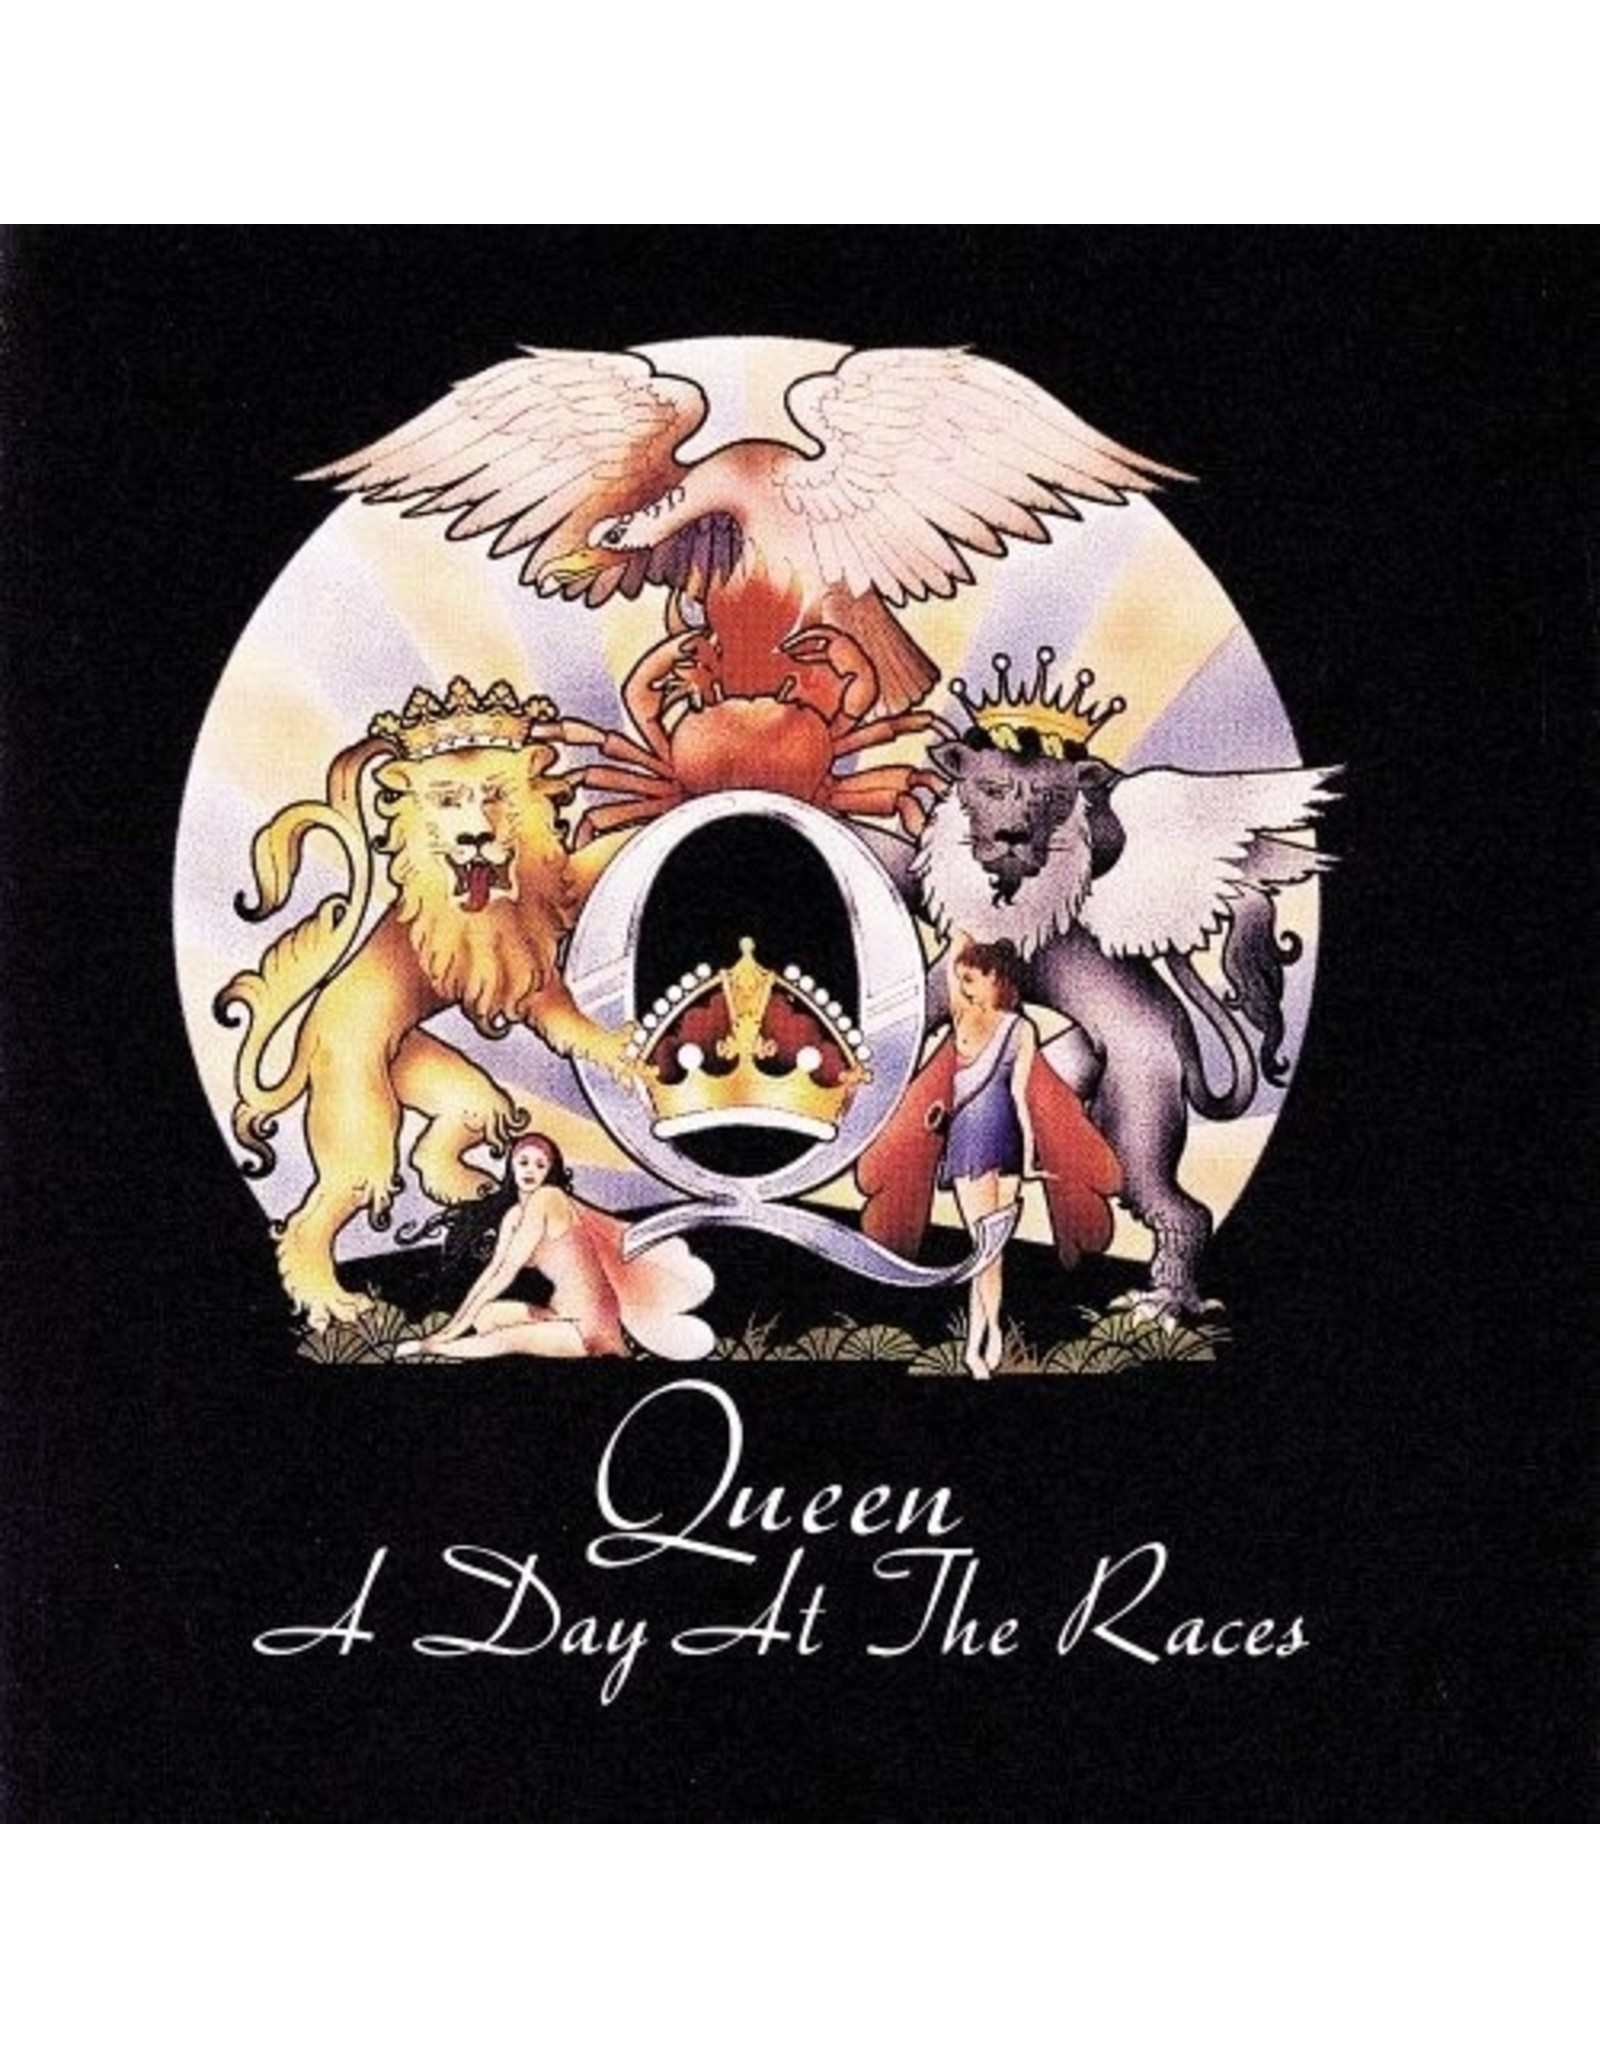 New Vinyl Queen - A Day At The Races LP